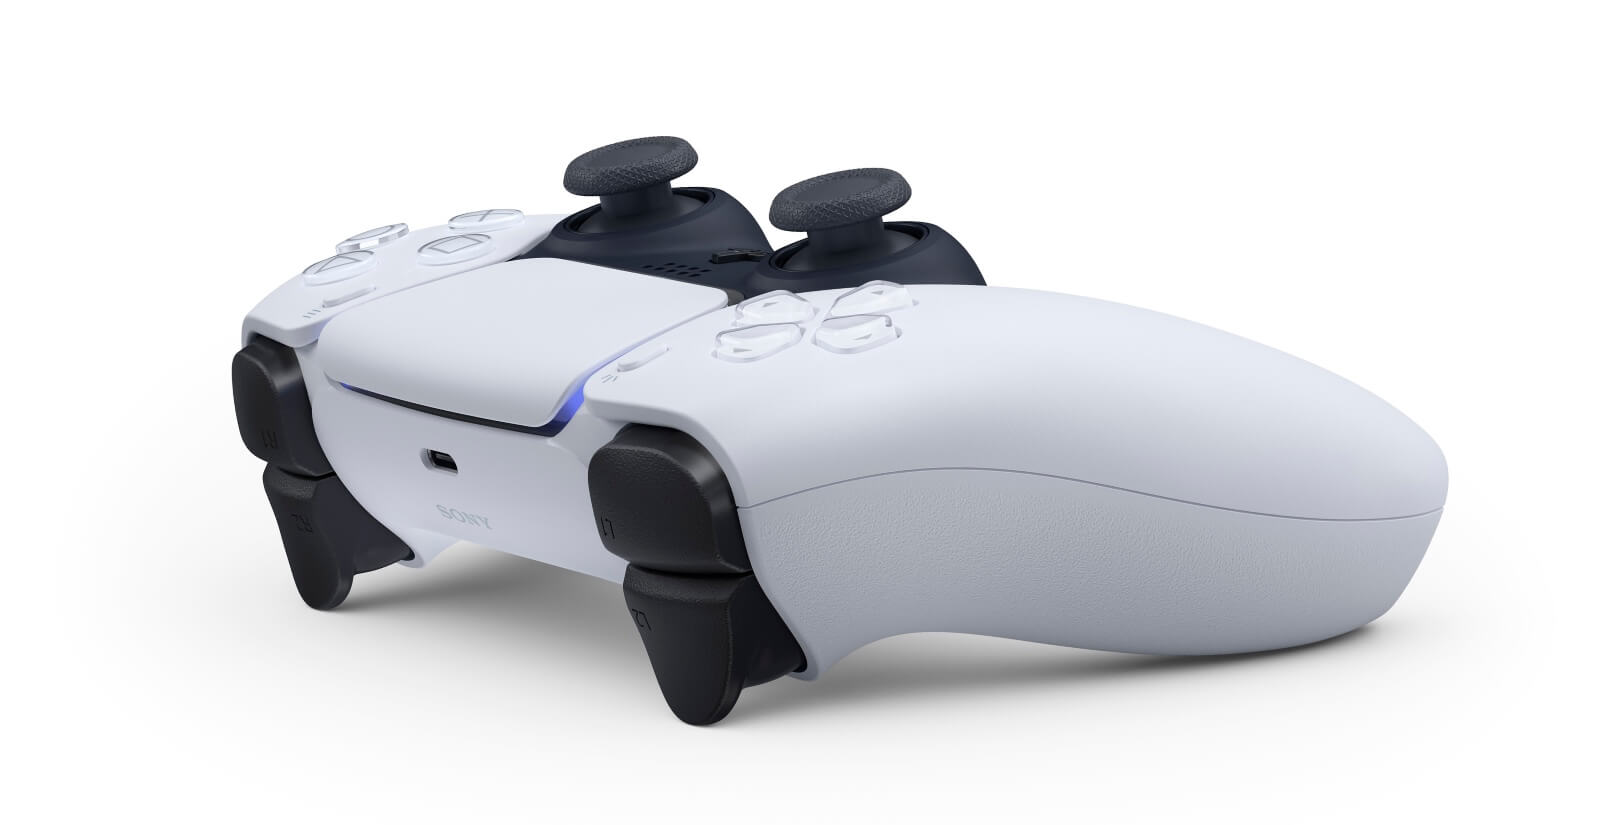 PS5 DualSense controller adaptive triggers with haptic feedback